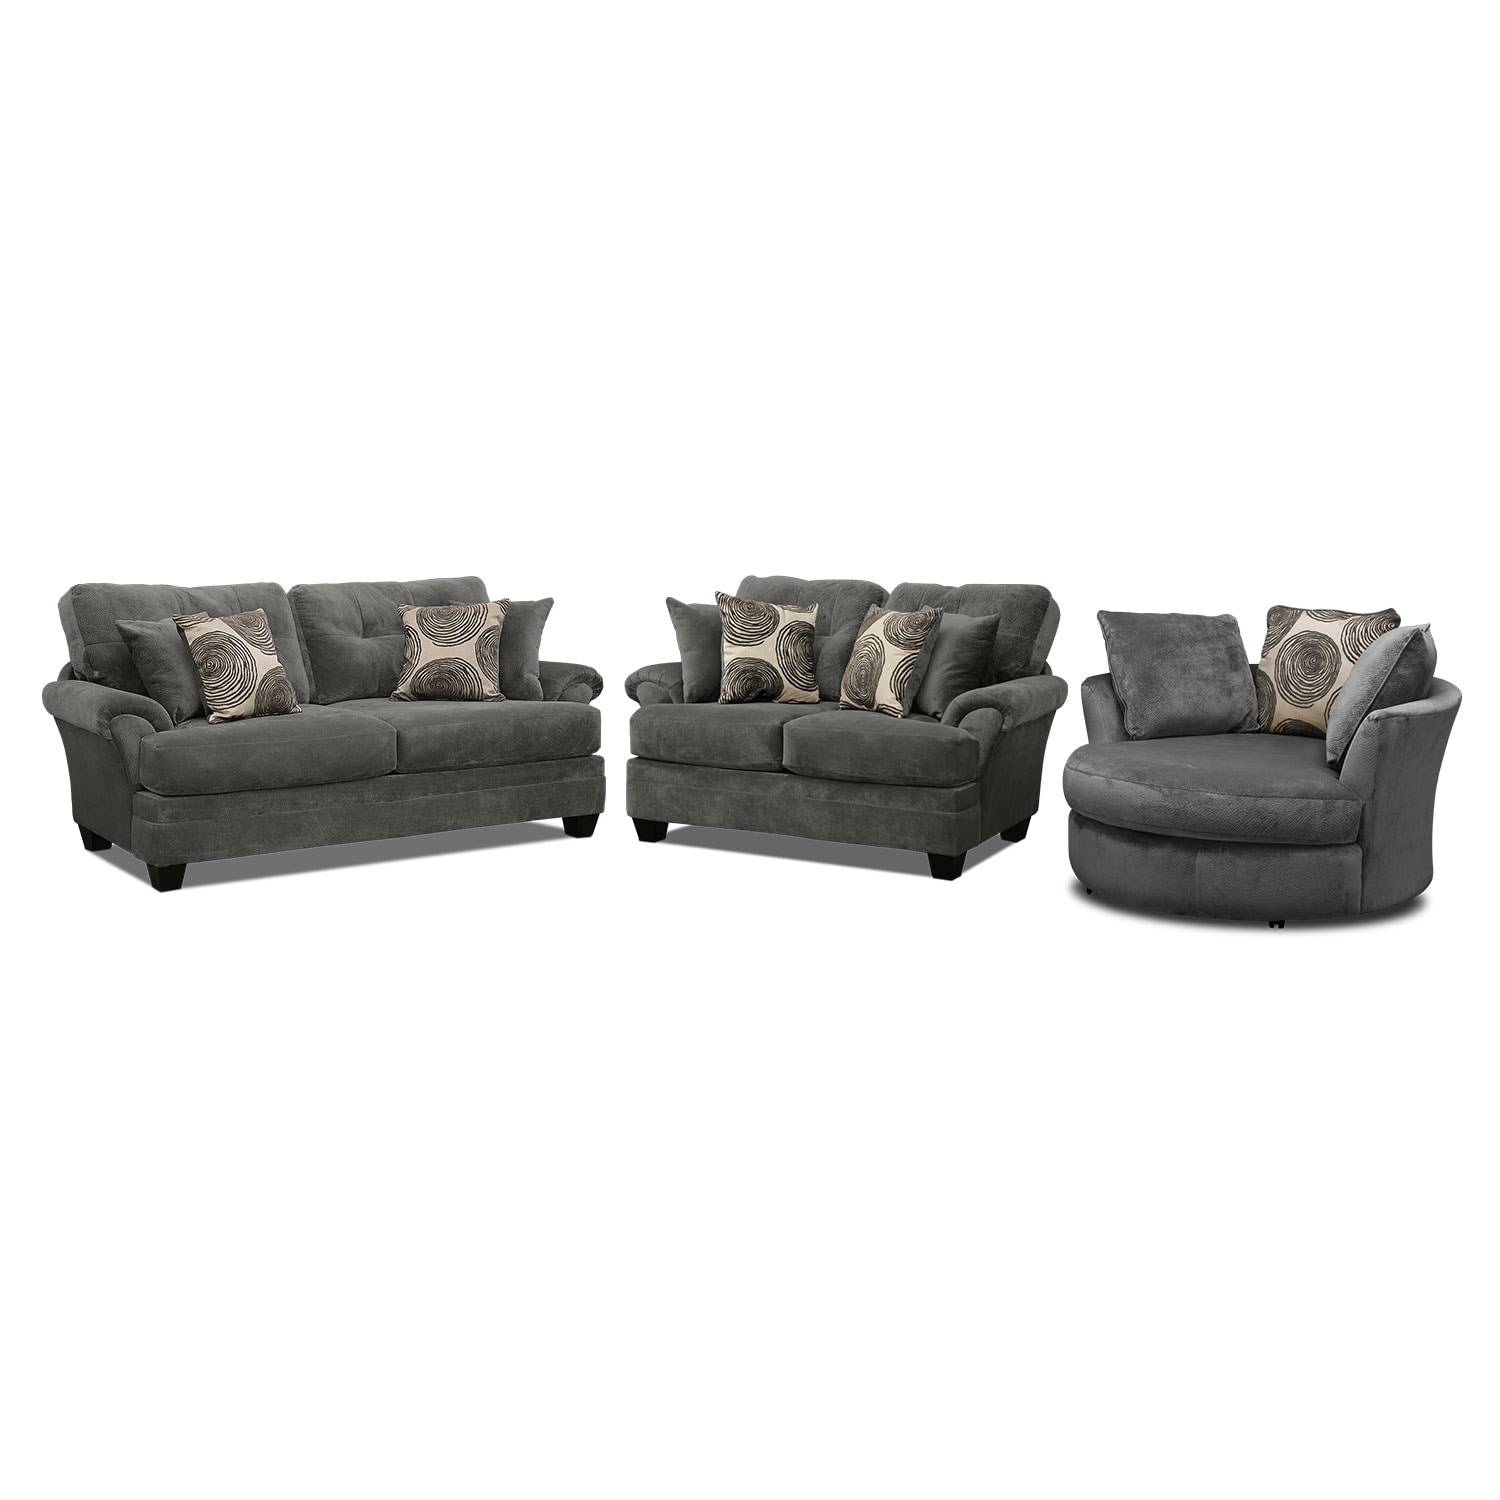 [Cordoba Gray 3 Pc. Living Room w/ Swivel Chair]